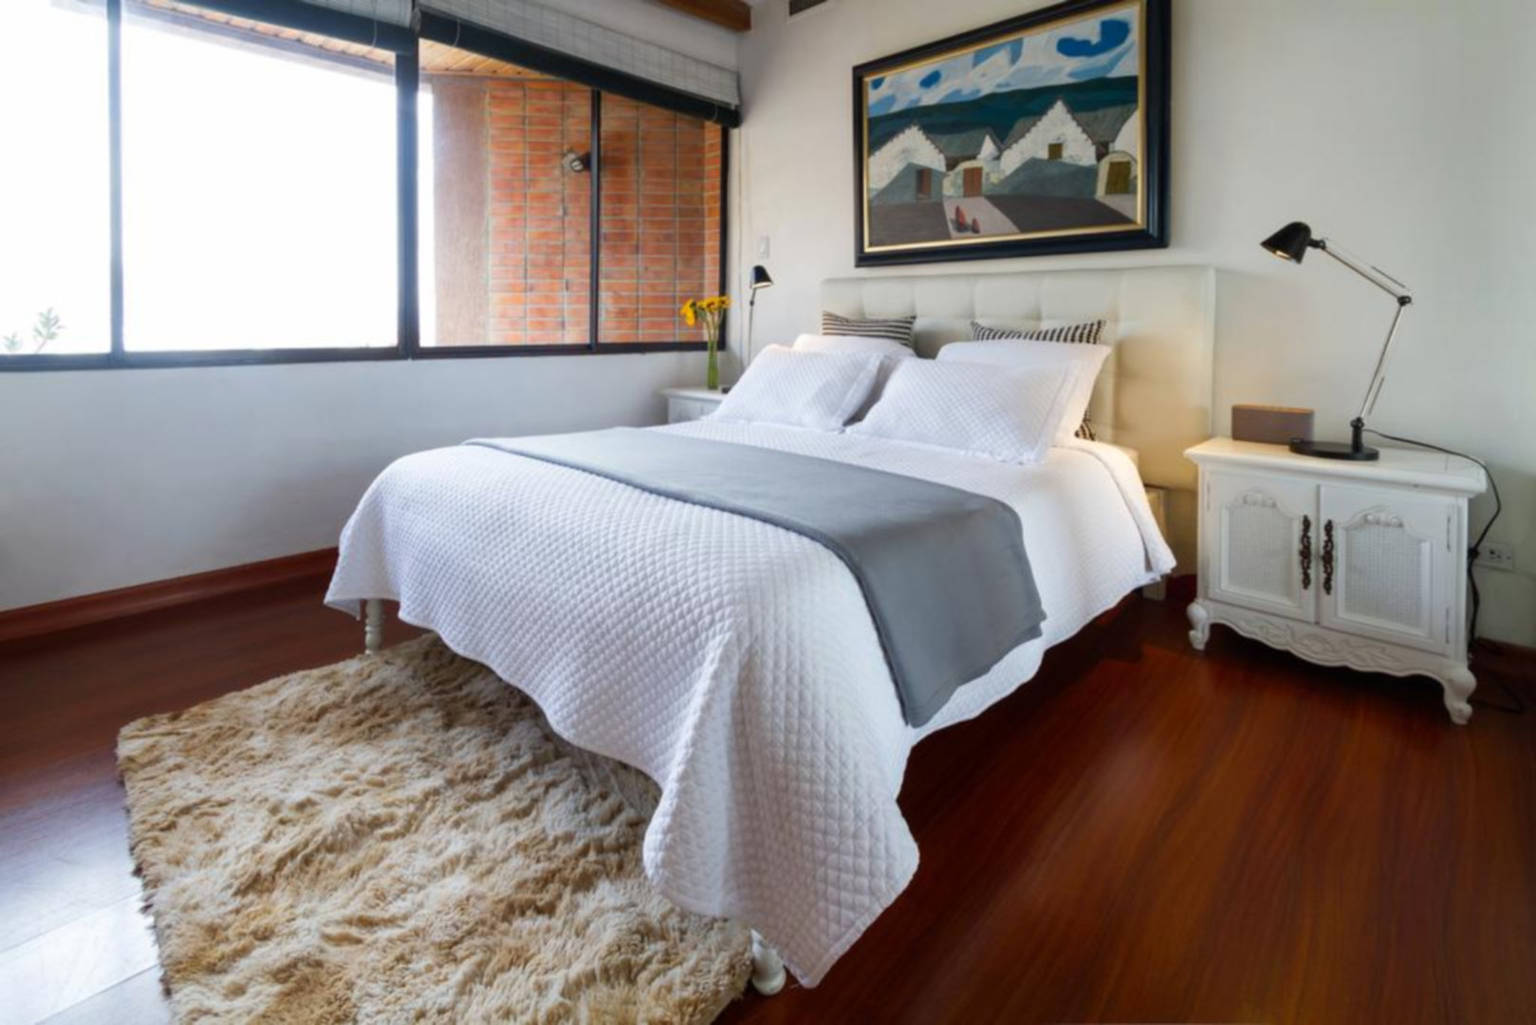 A bedroom with a bed and desk in a room at The Penthouse Lodge.